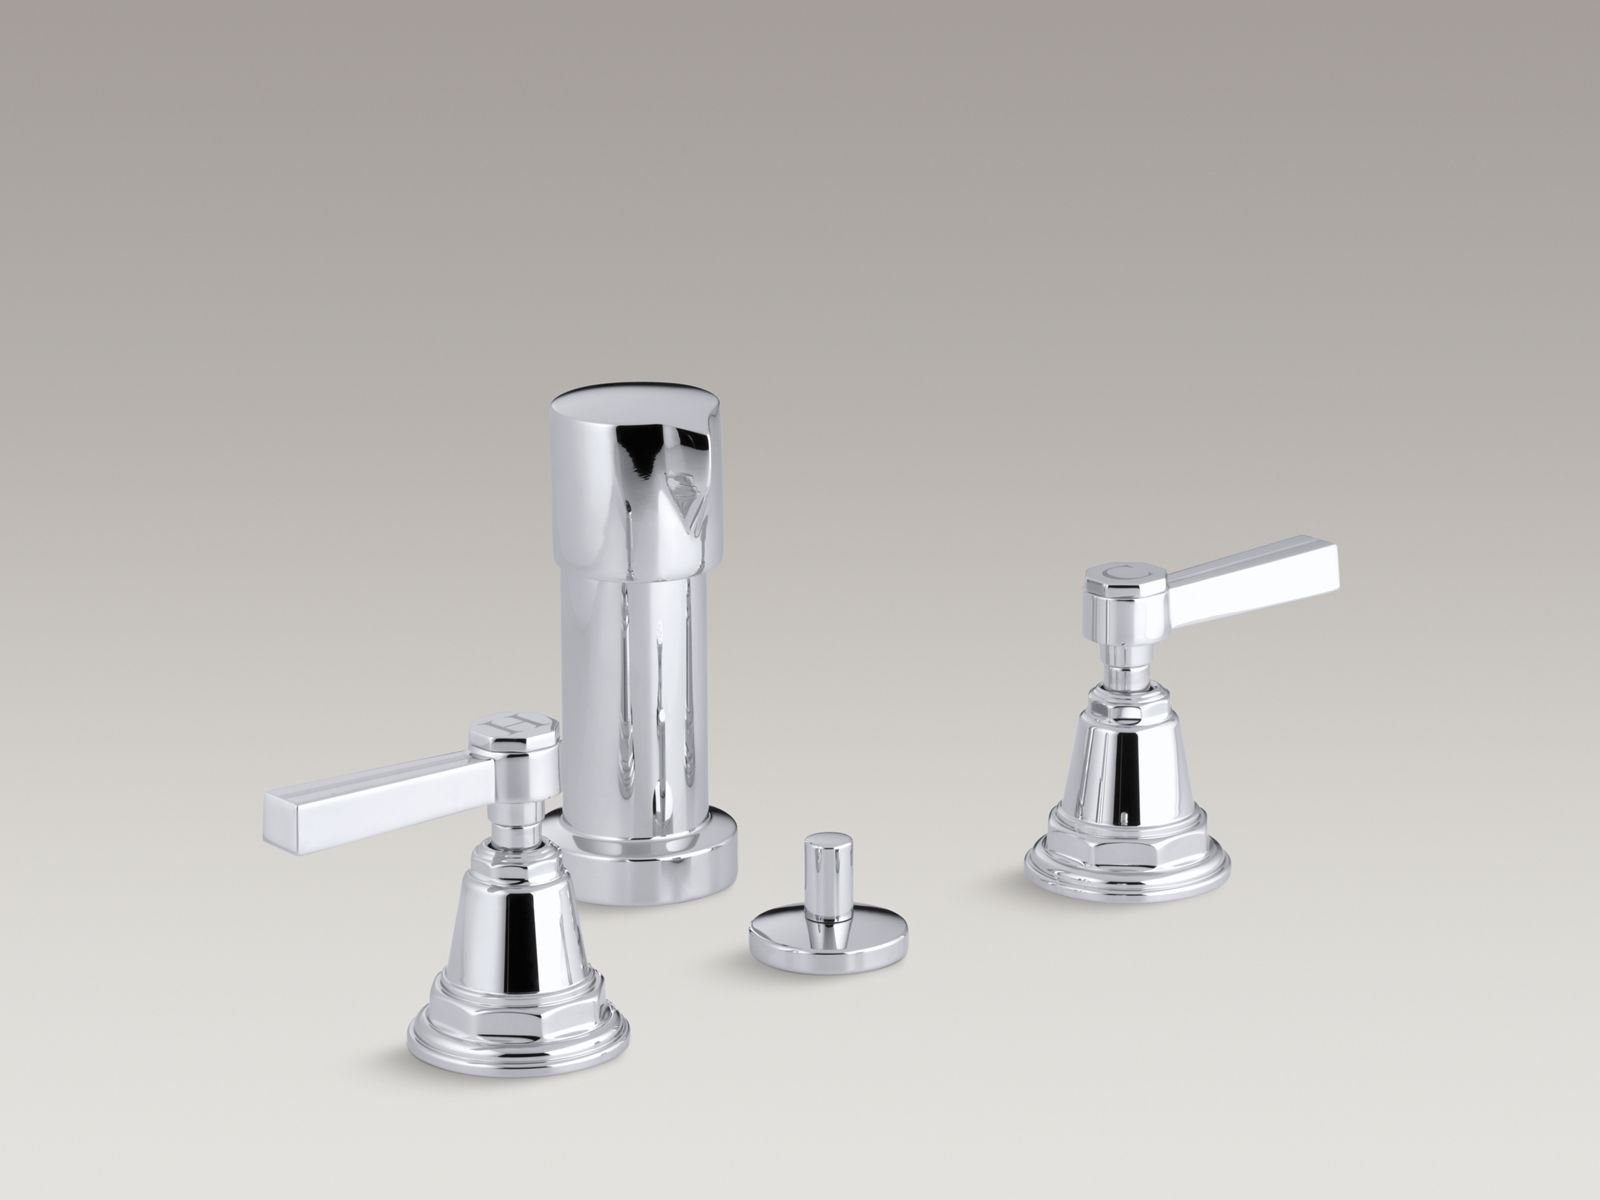 Pinstripe® vertical spray bidet faucet with lever handles